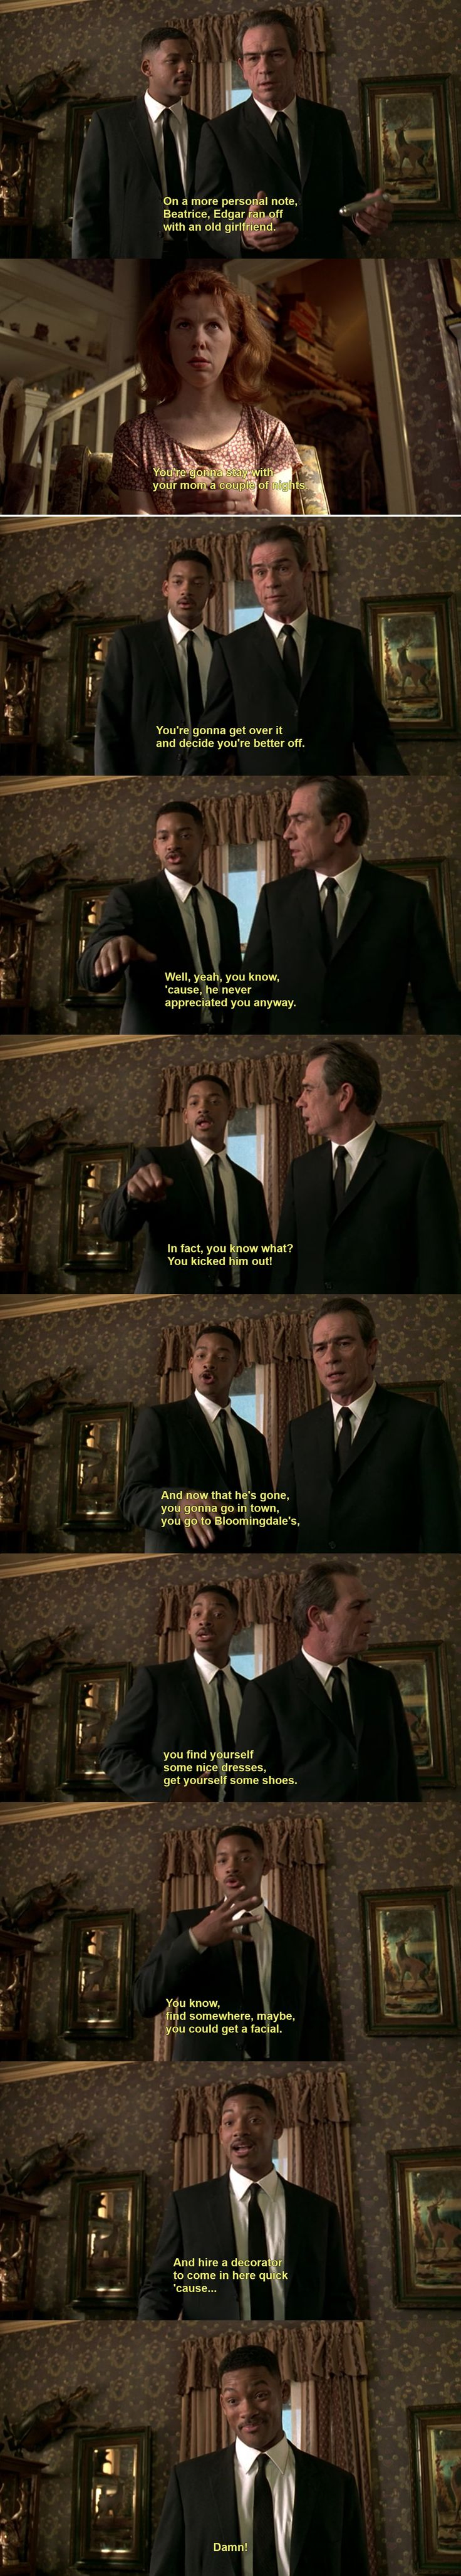 The proper way to put false memories in someone's mind. ---- Men In Black